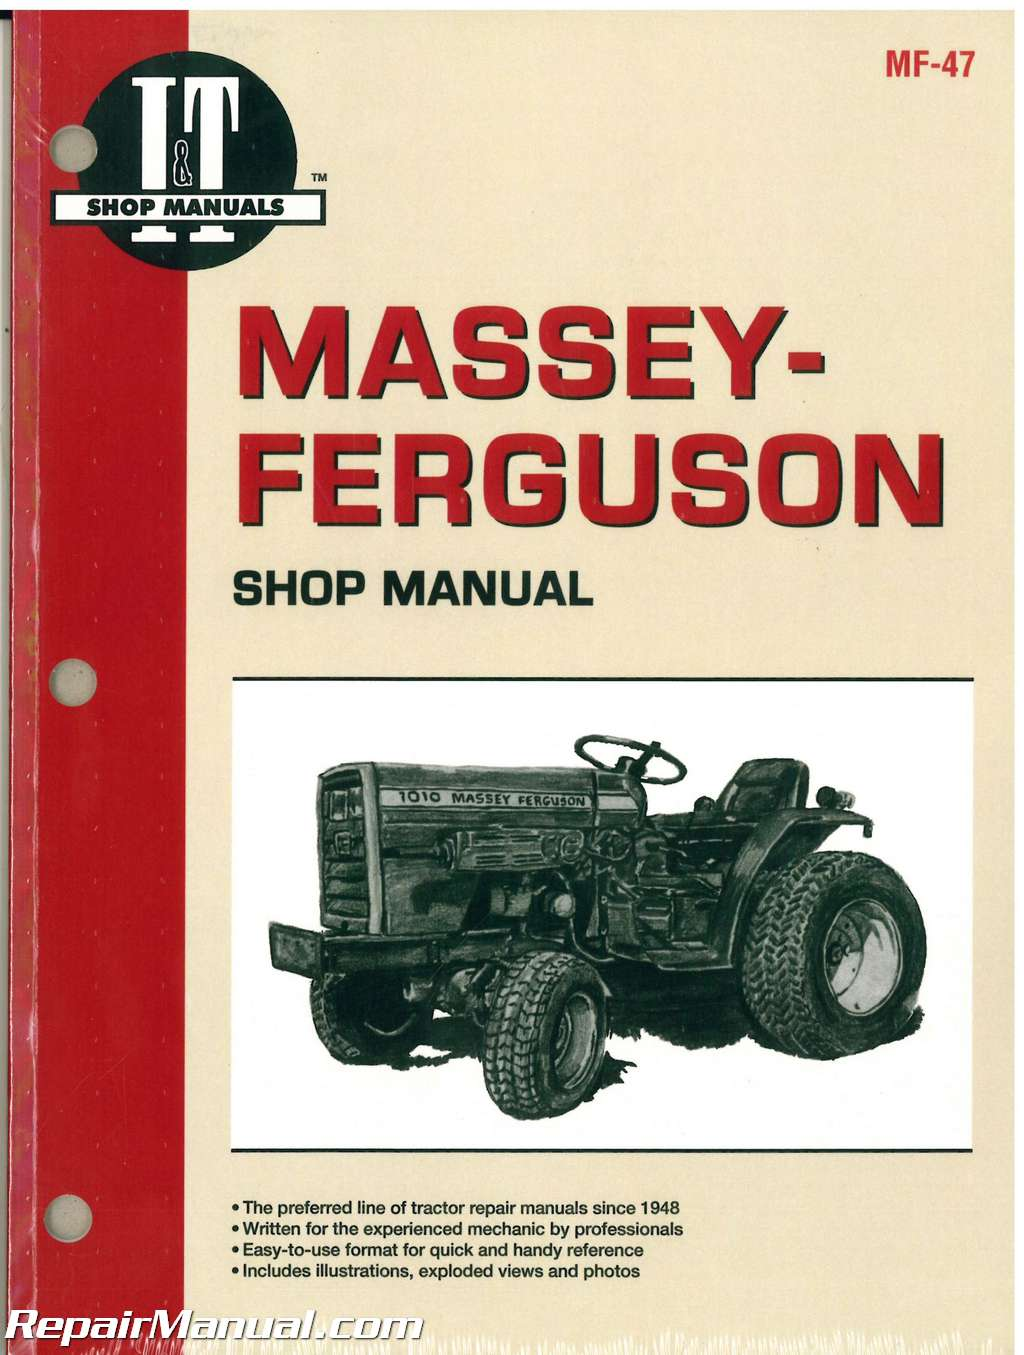 Farmall 706 Wiring Harness Library B Diagram Massey Ferguson Harris 1010 1020 Tractor Manual Ih Super C For